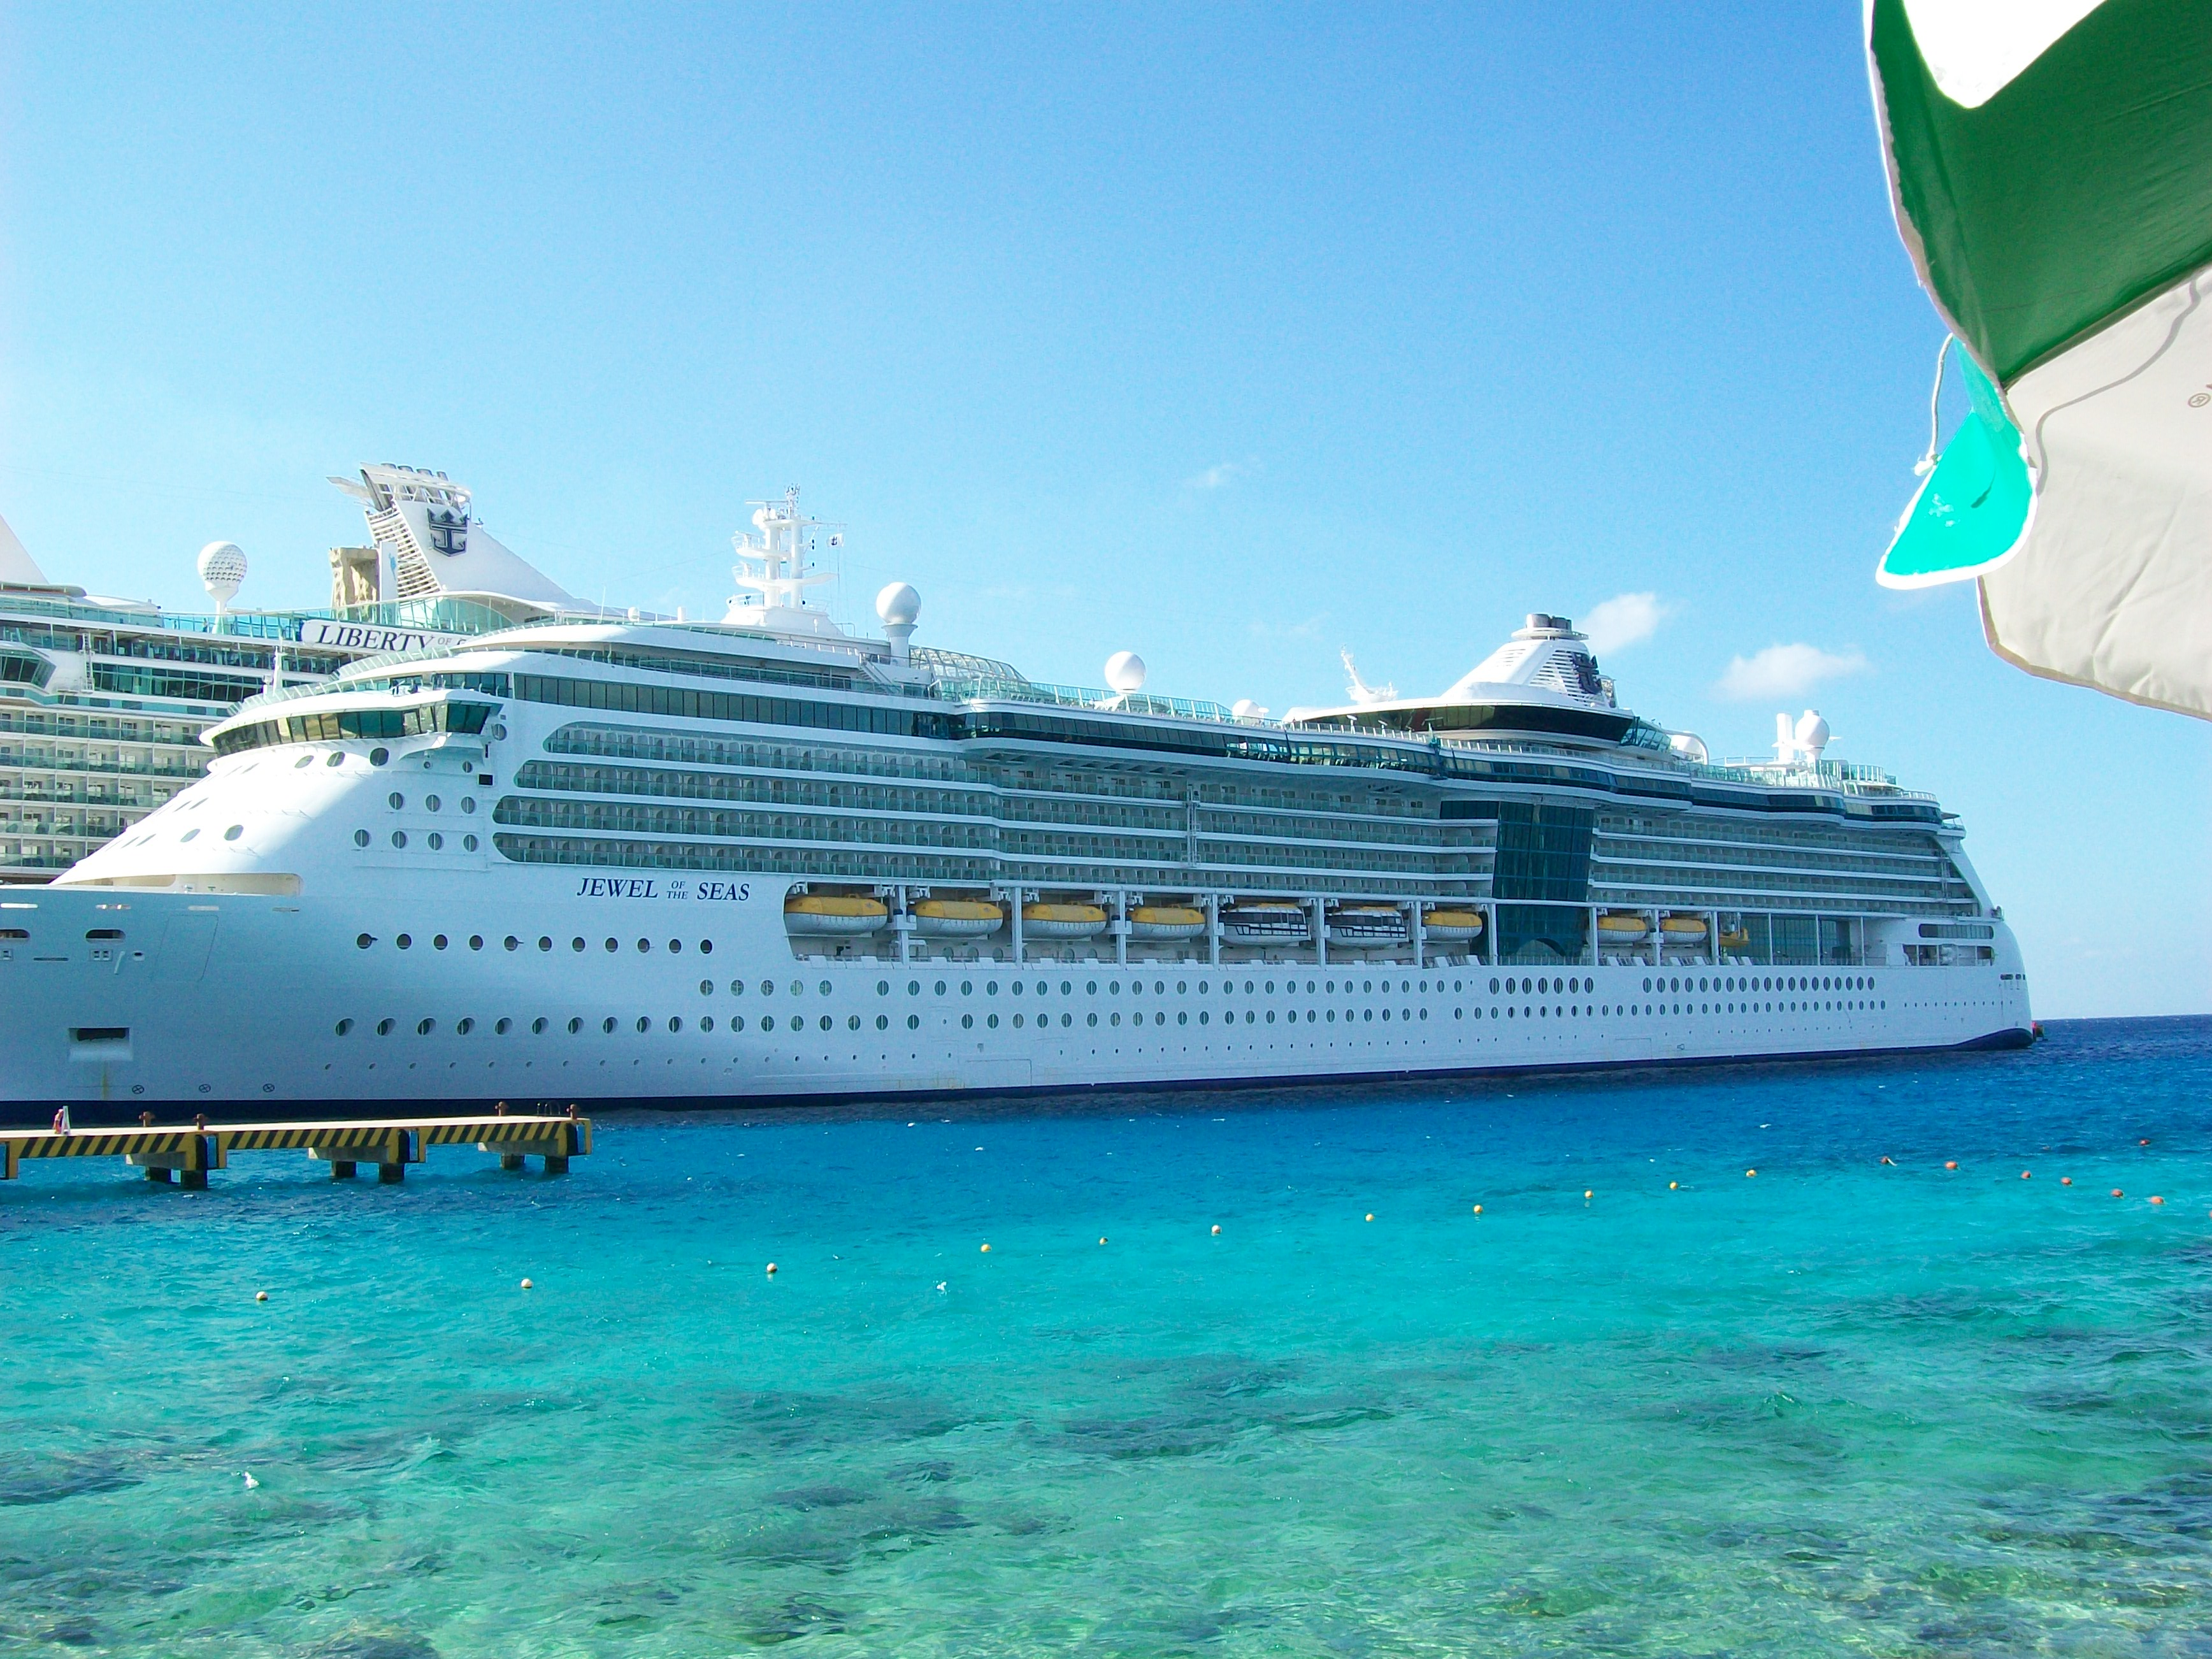 Jewel of the Seas Cruise Review - Jan 24, 2013 - A Quick Getaway